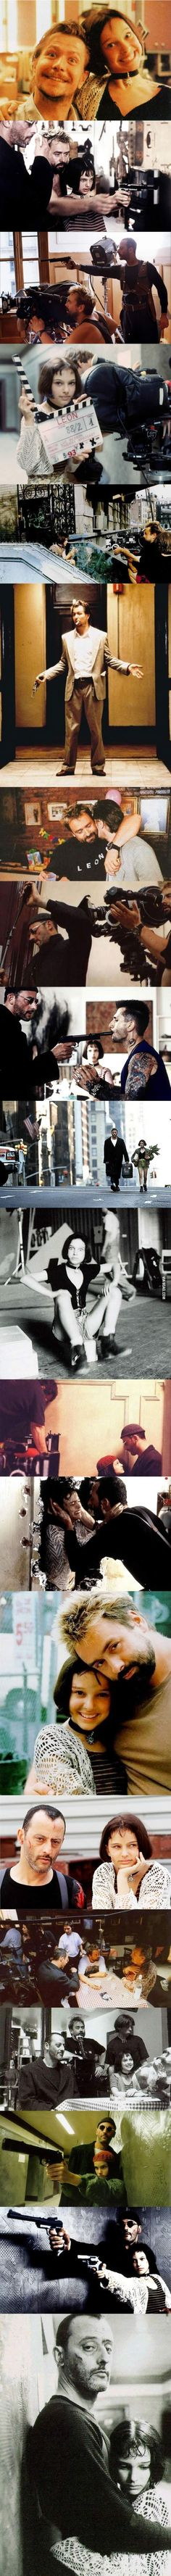 """20 photos from the making of """"Léon: The Professional"""" (1994)"""